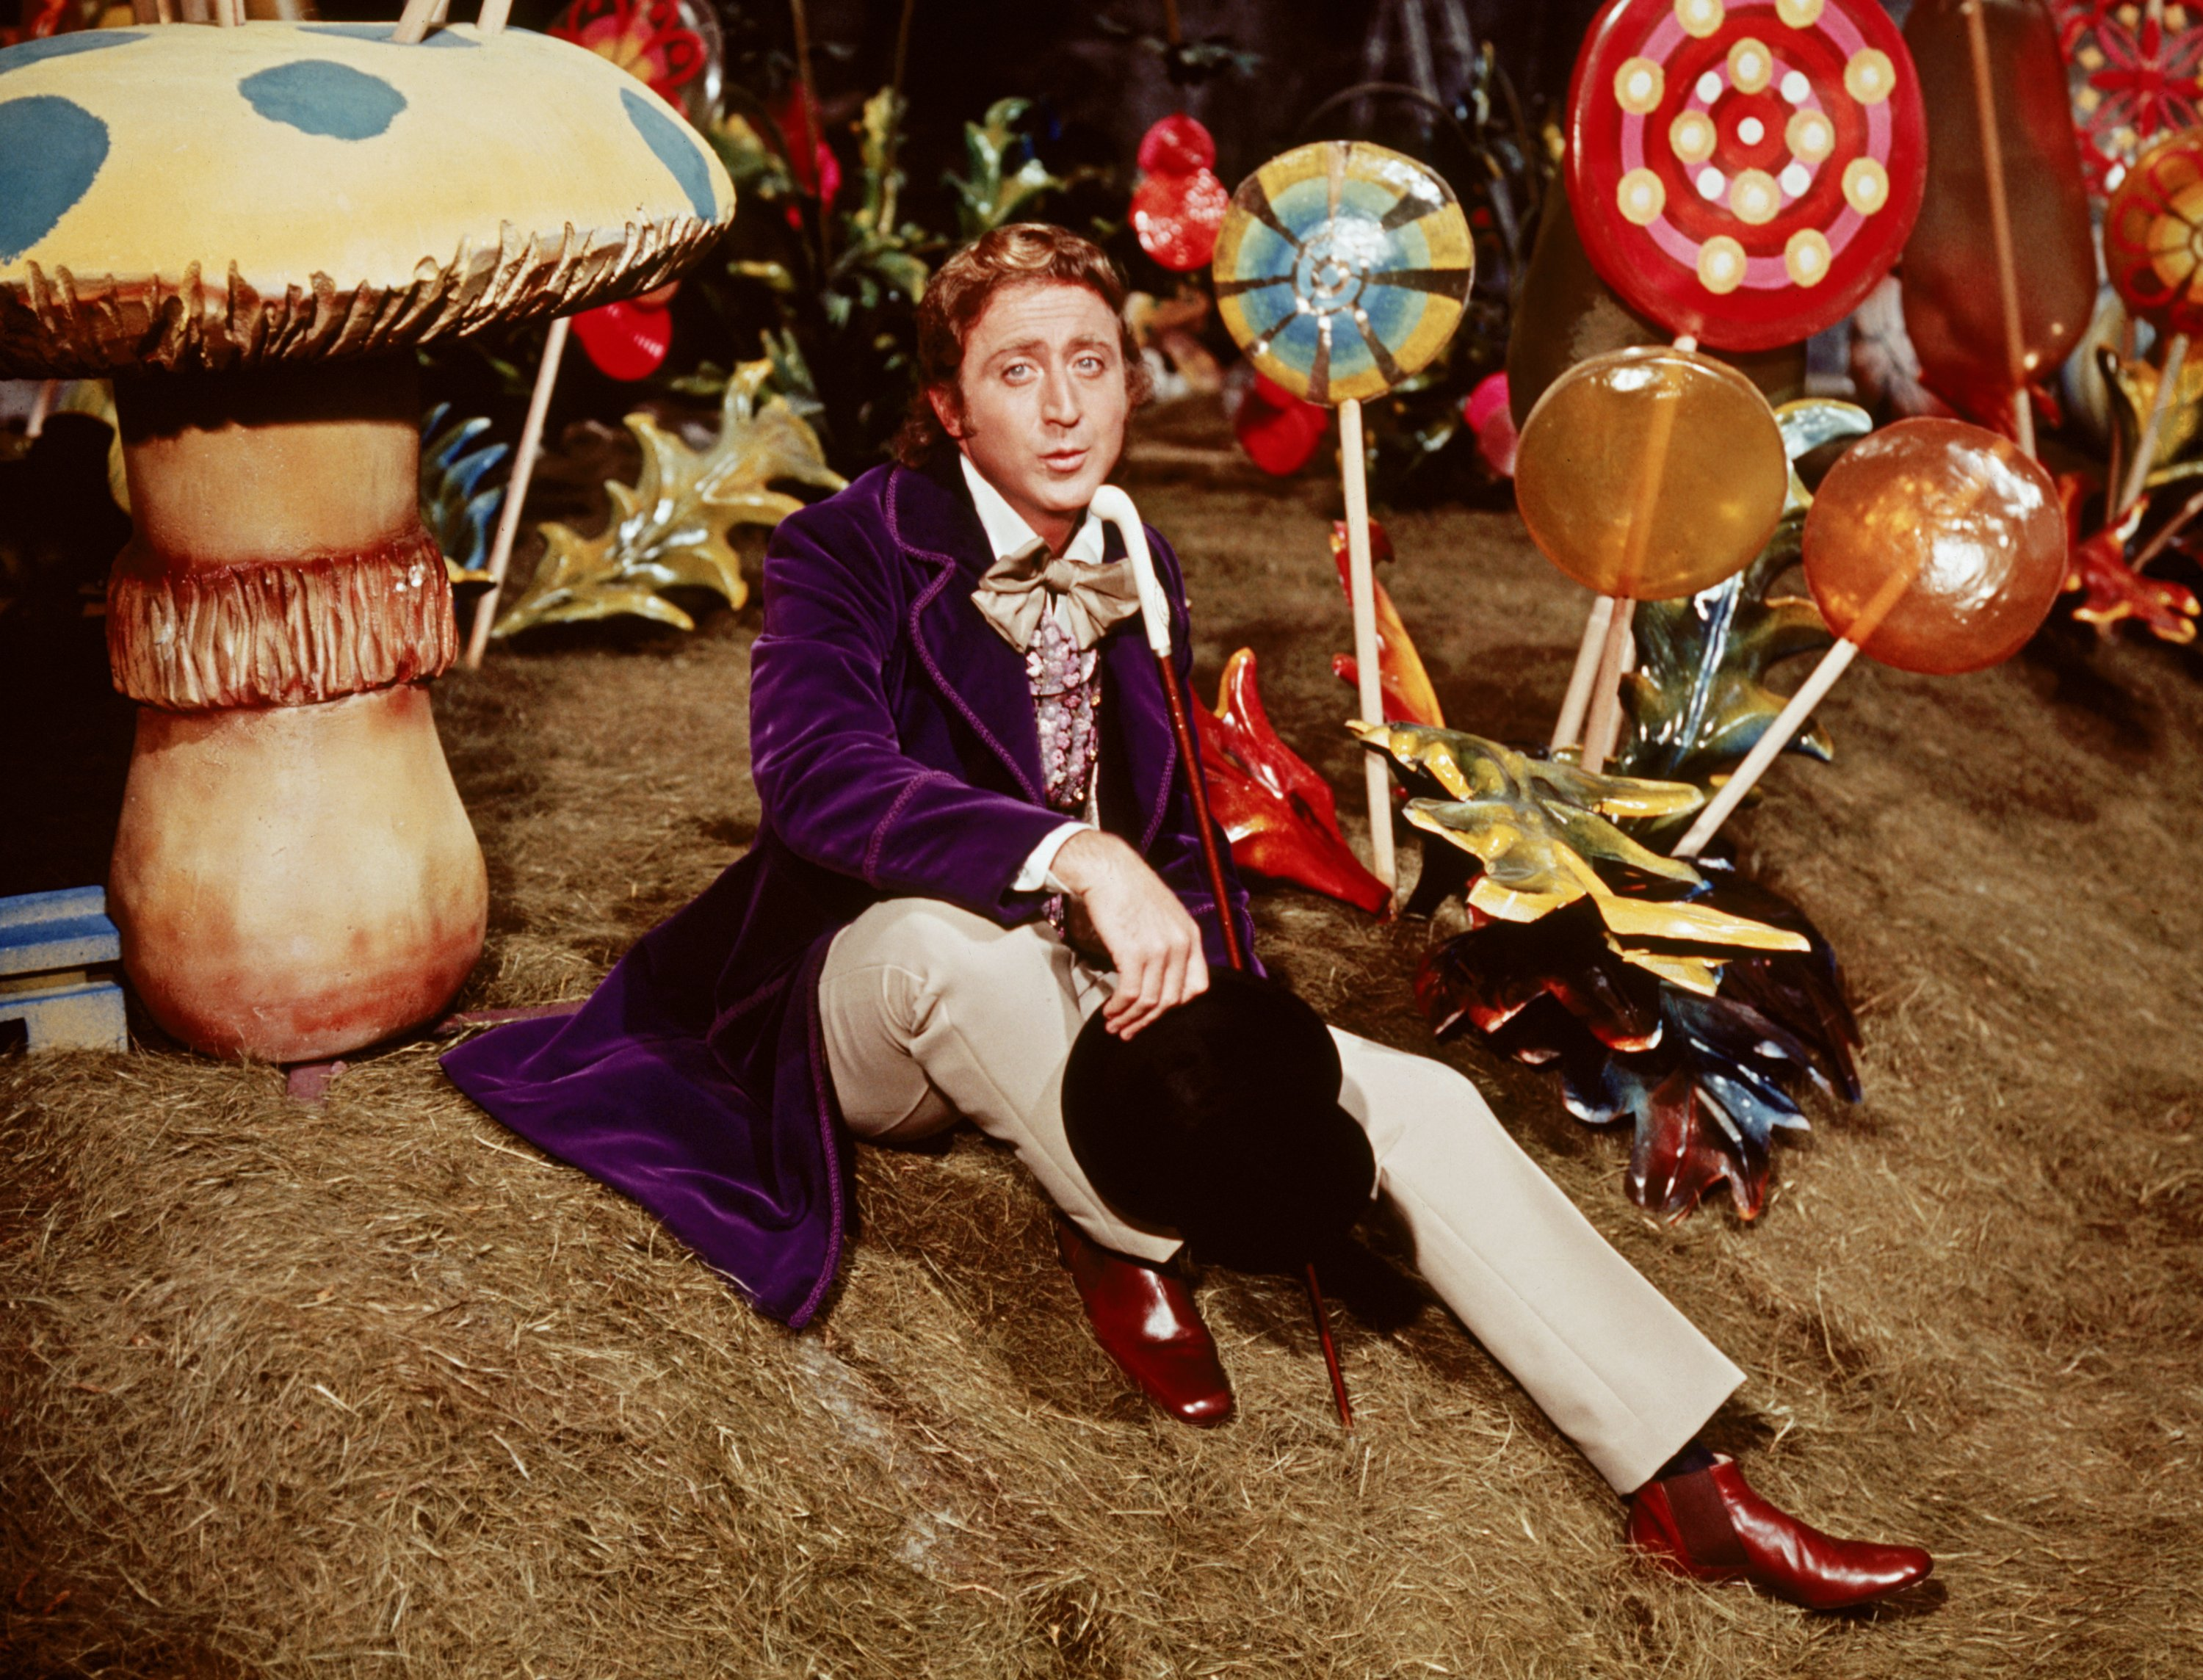 Actor Gene Wilder as Willy Wonka in the 1971 film 'Willy Wonka & the Chocolate Factory.' (Warner Bros. via Reuters)